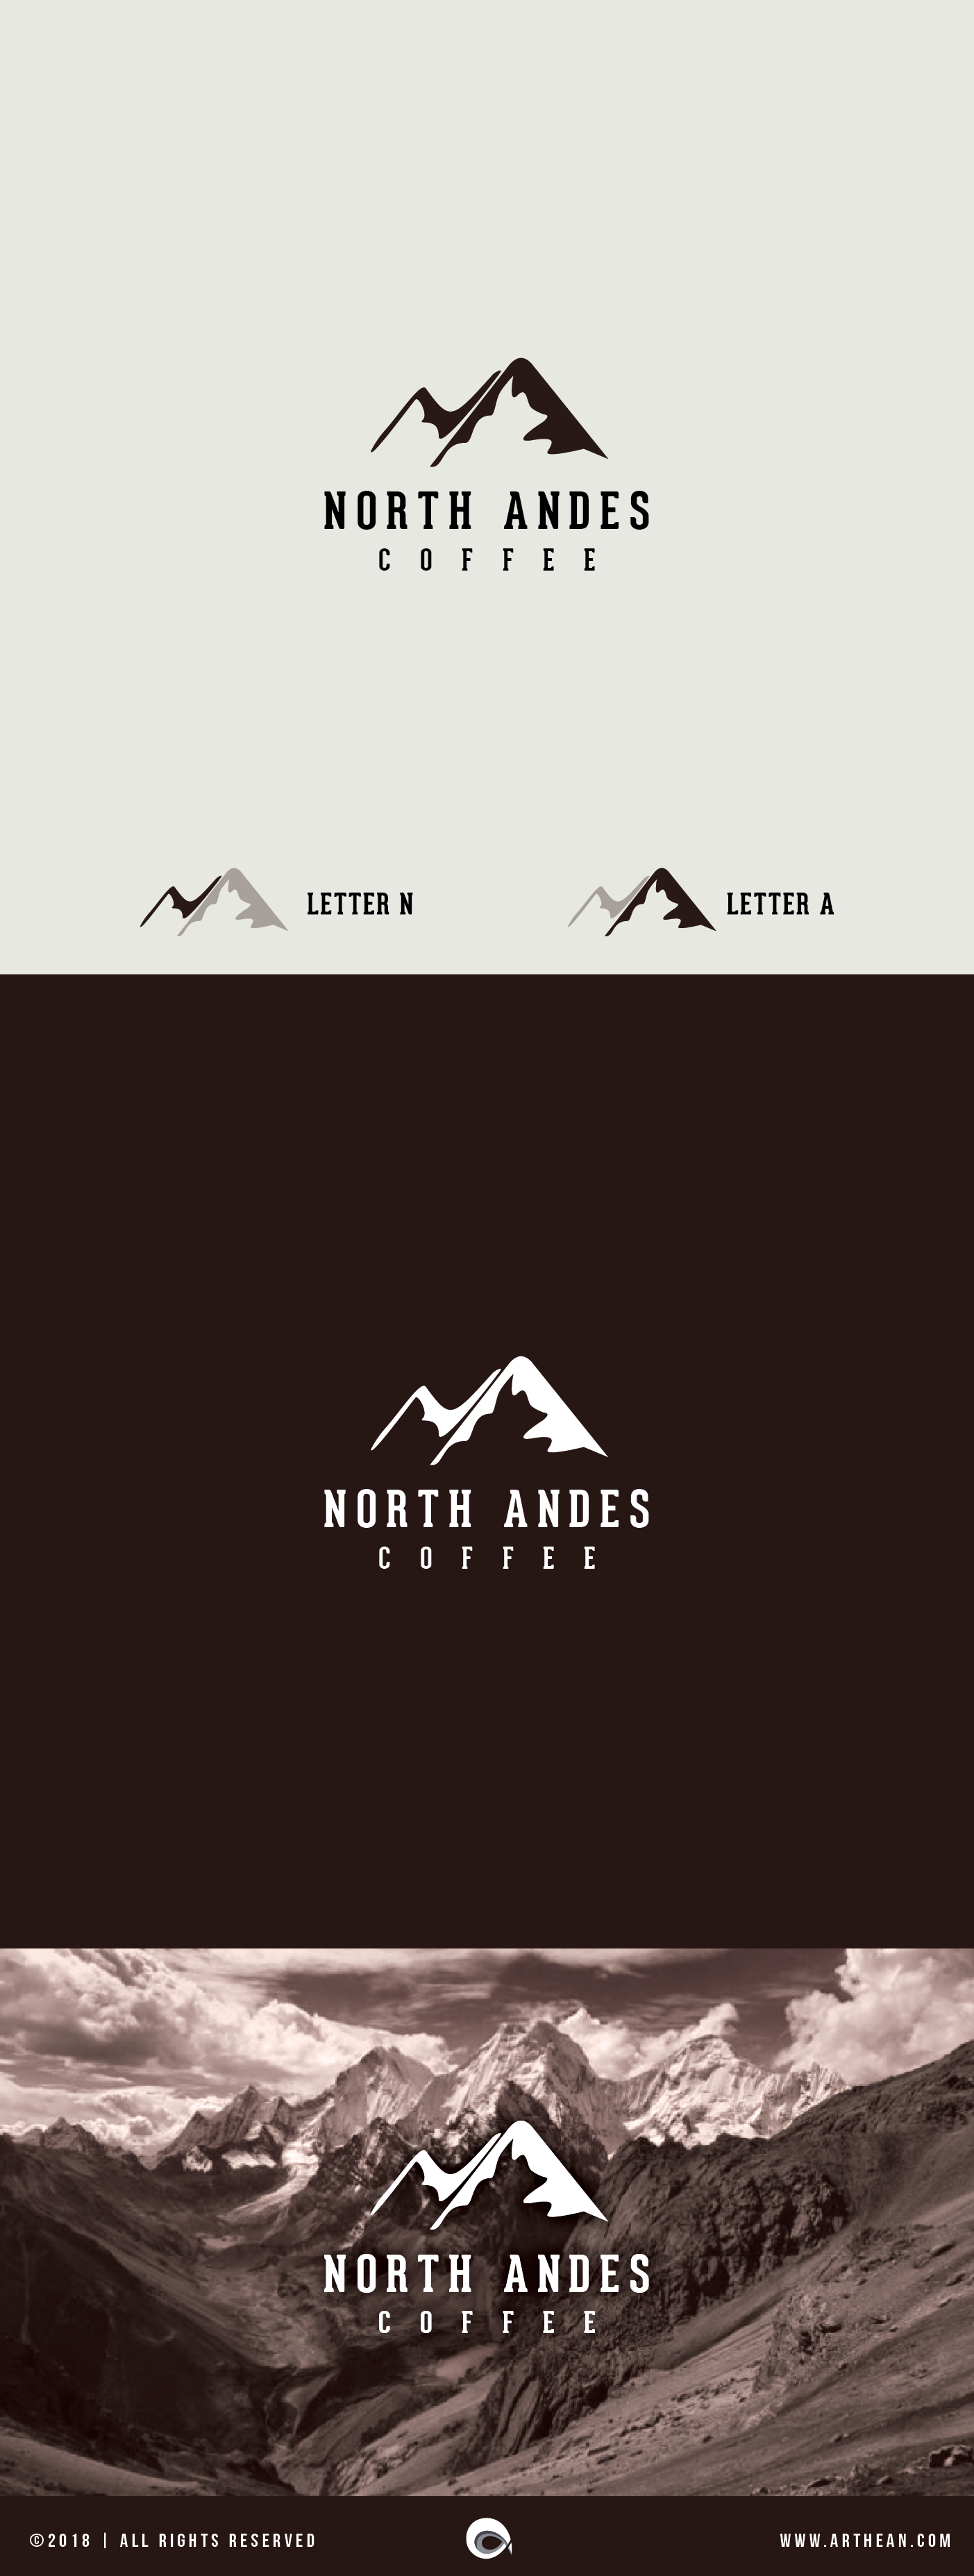 Logo design for a North Andes coffee